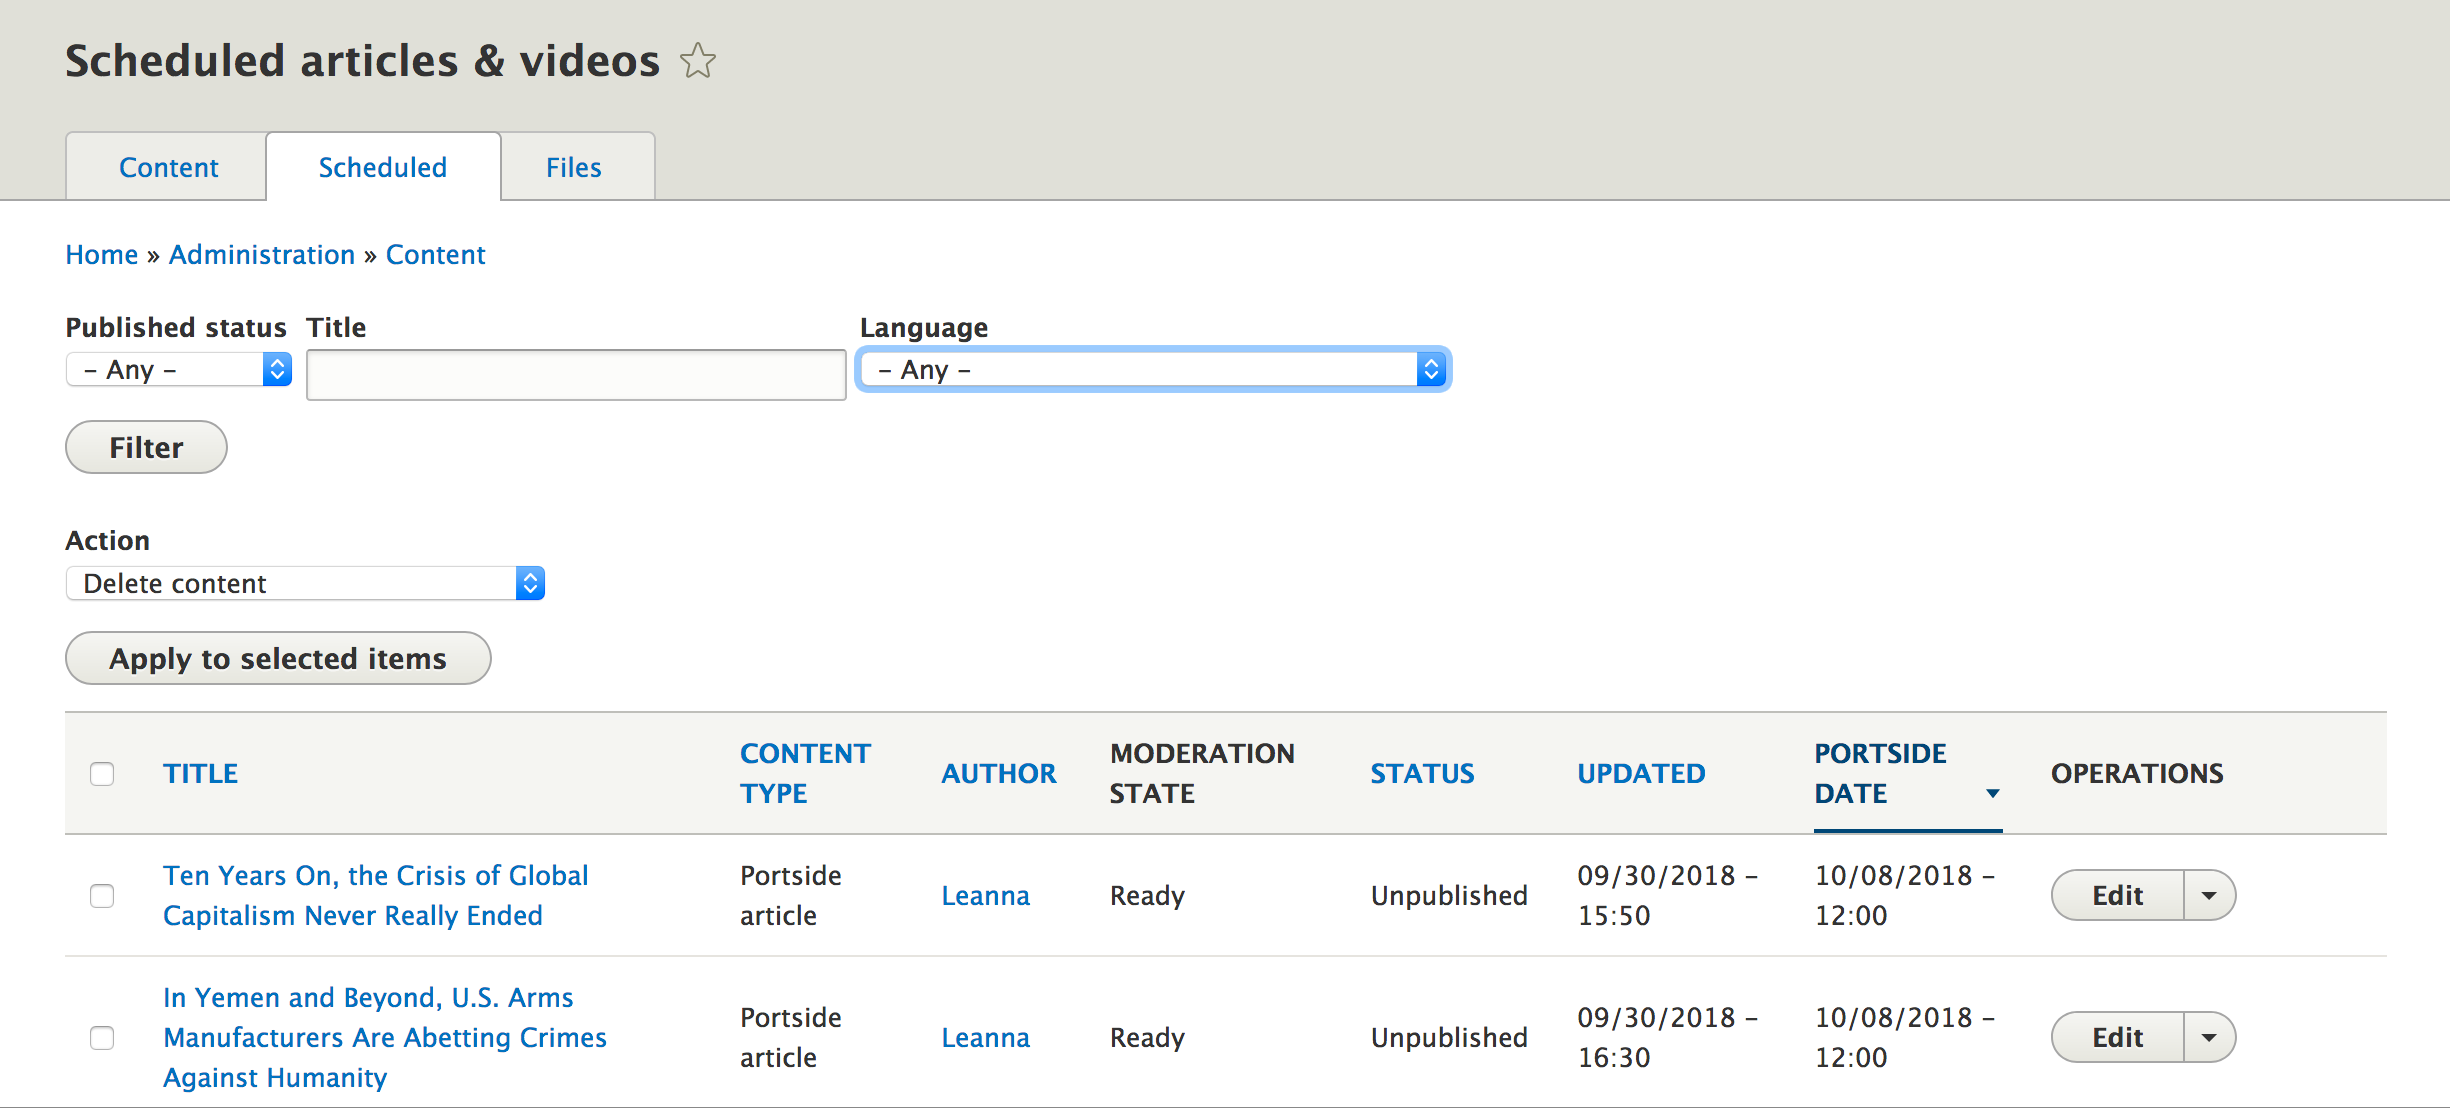 Screenshot of the scheduled content page